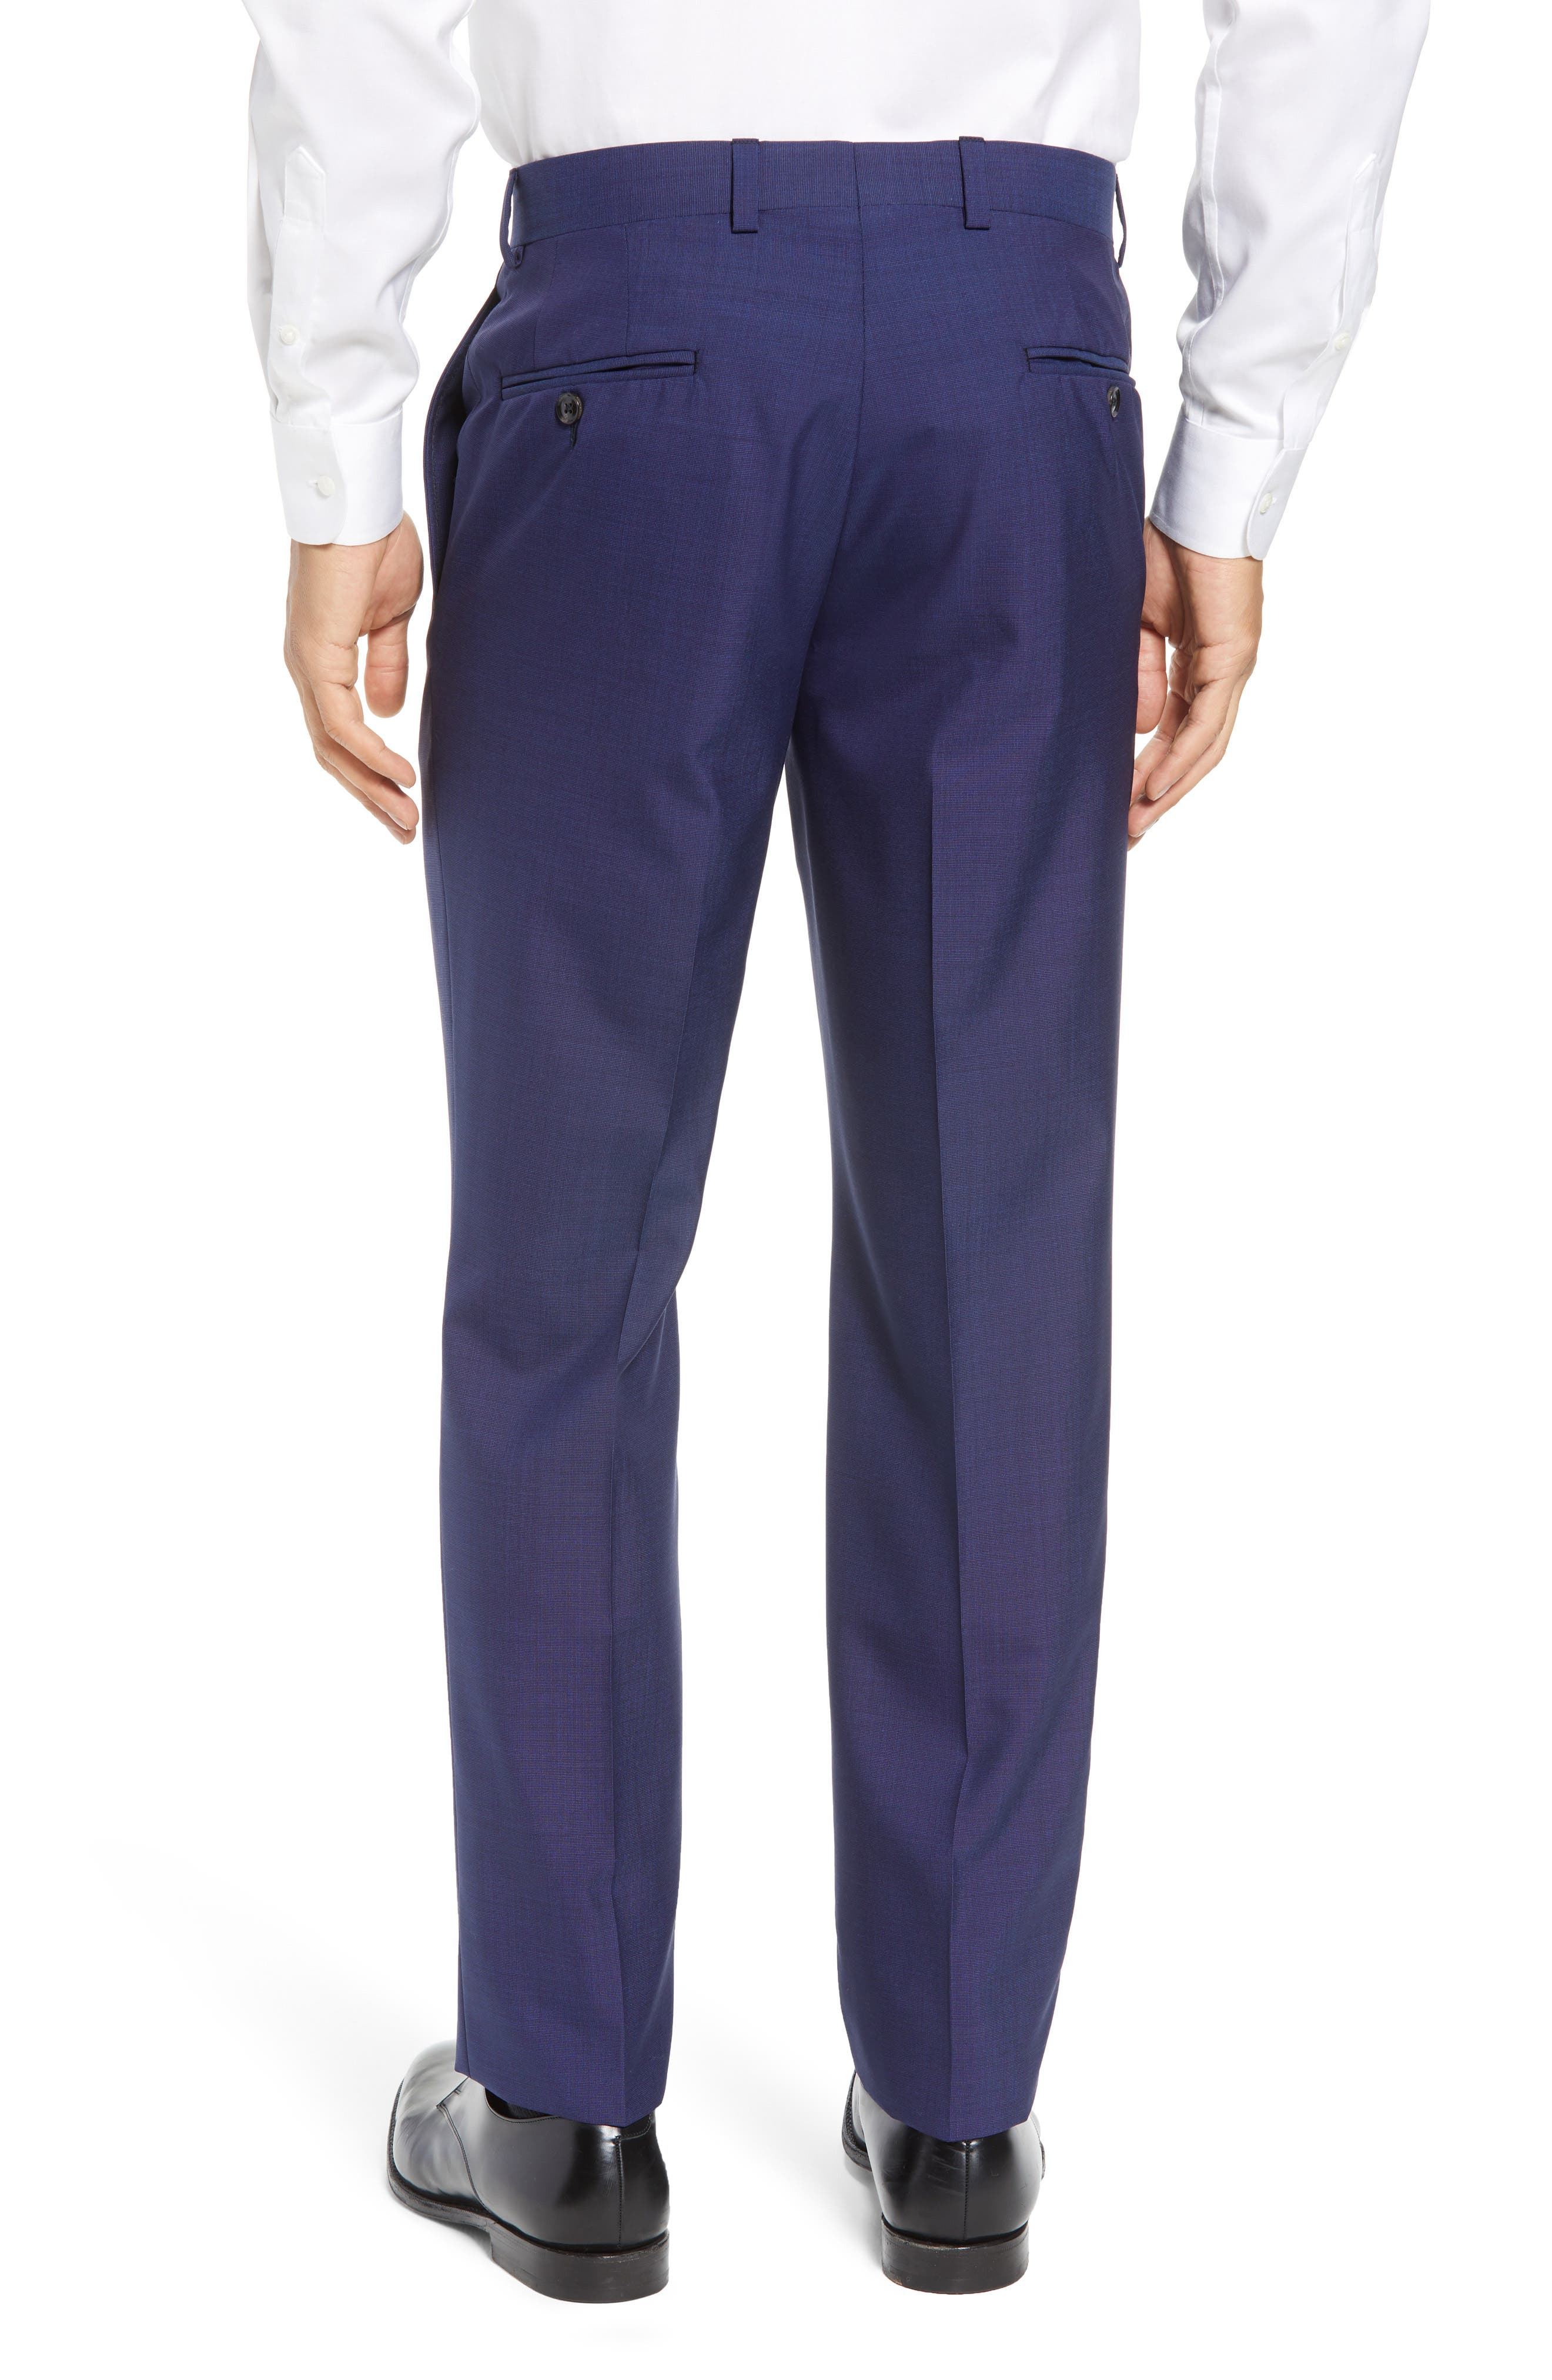 TED BAKER LONDON, Jefferson Flat Front Solid Wool Trousers, Alternate thumbnail 4, color, BLUE